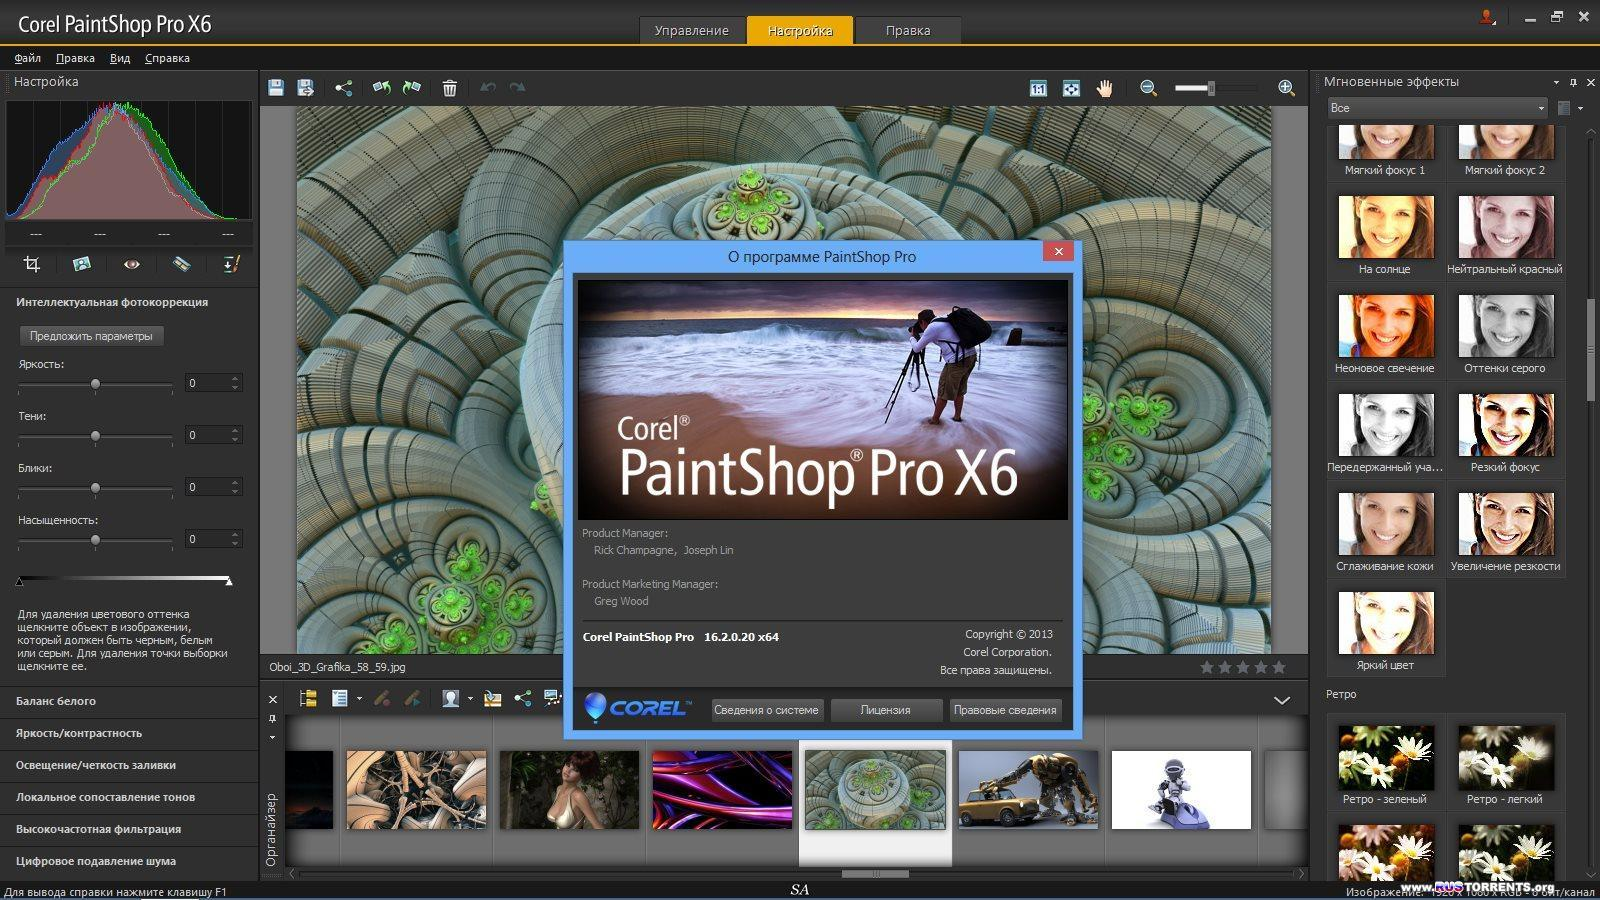 Corel PaintShop Pro X6 16.2.0.20 SP2